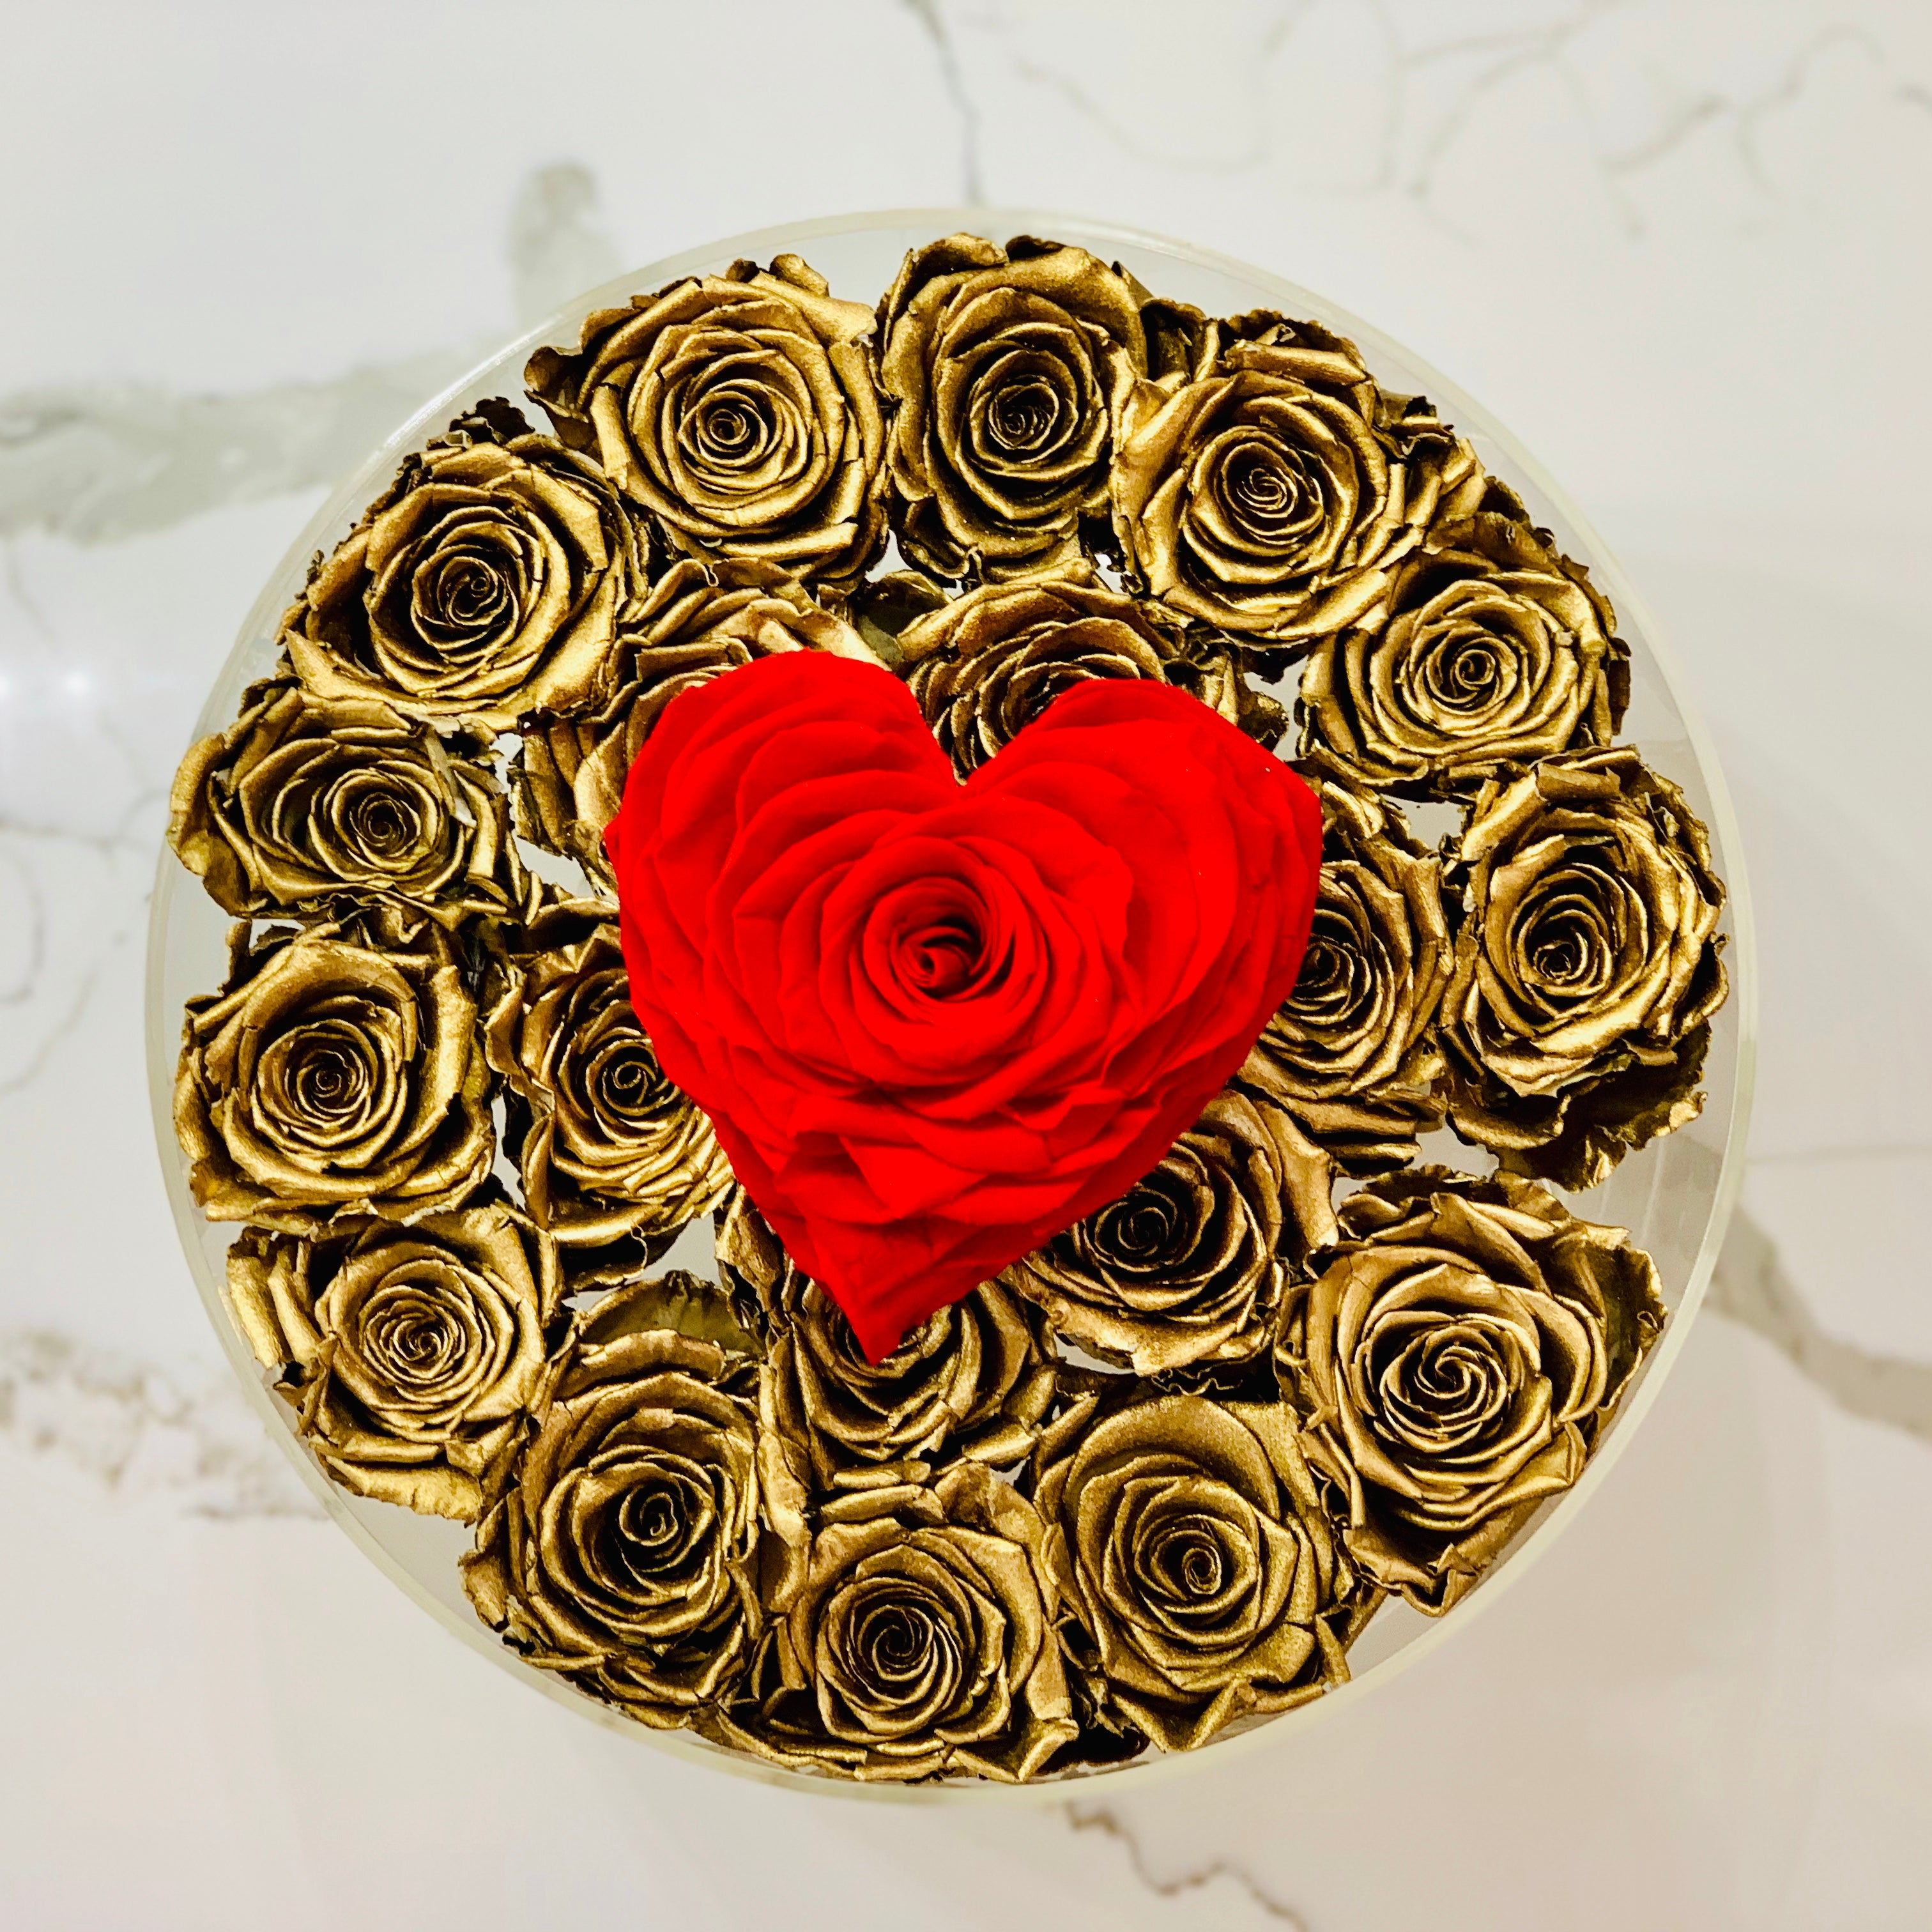 Modern Rose Box with preserved roses that last for years with metallic gold roses and large red petal heart